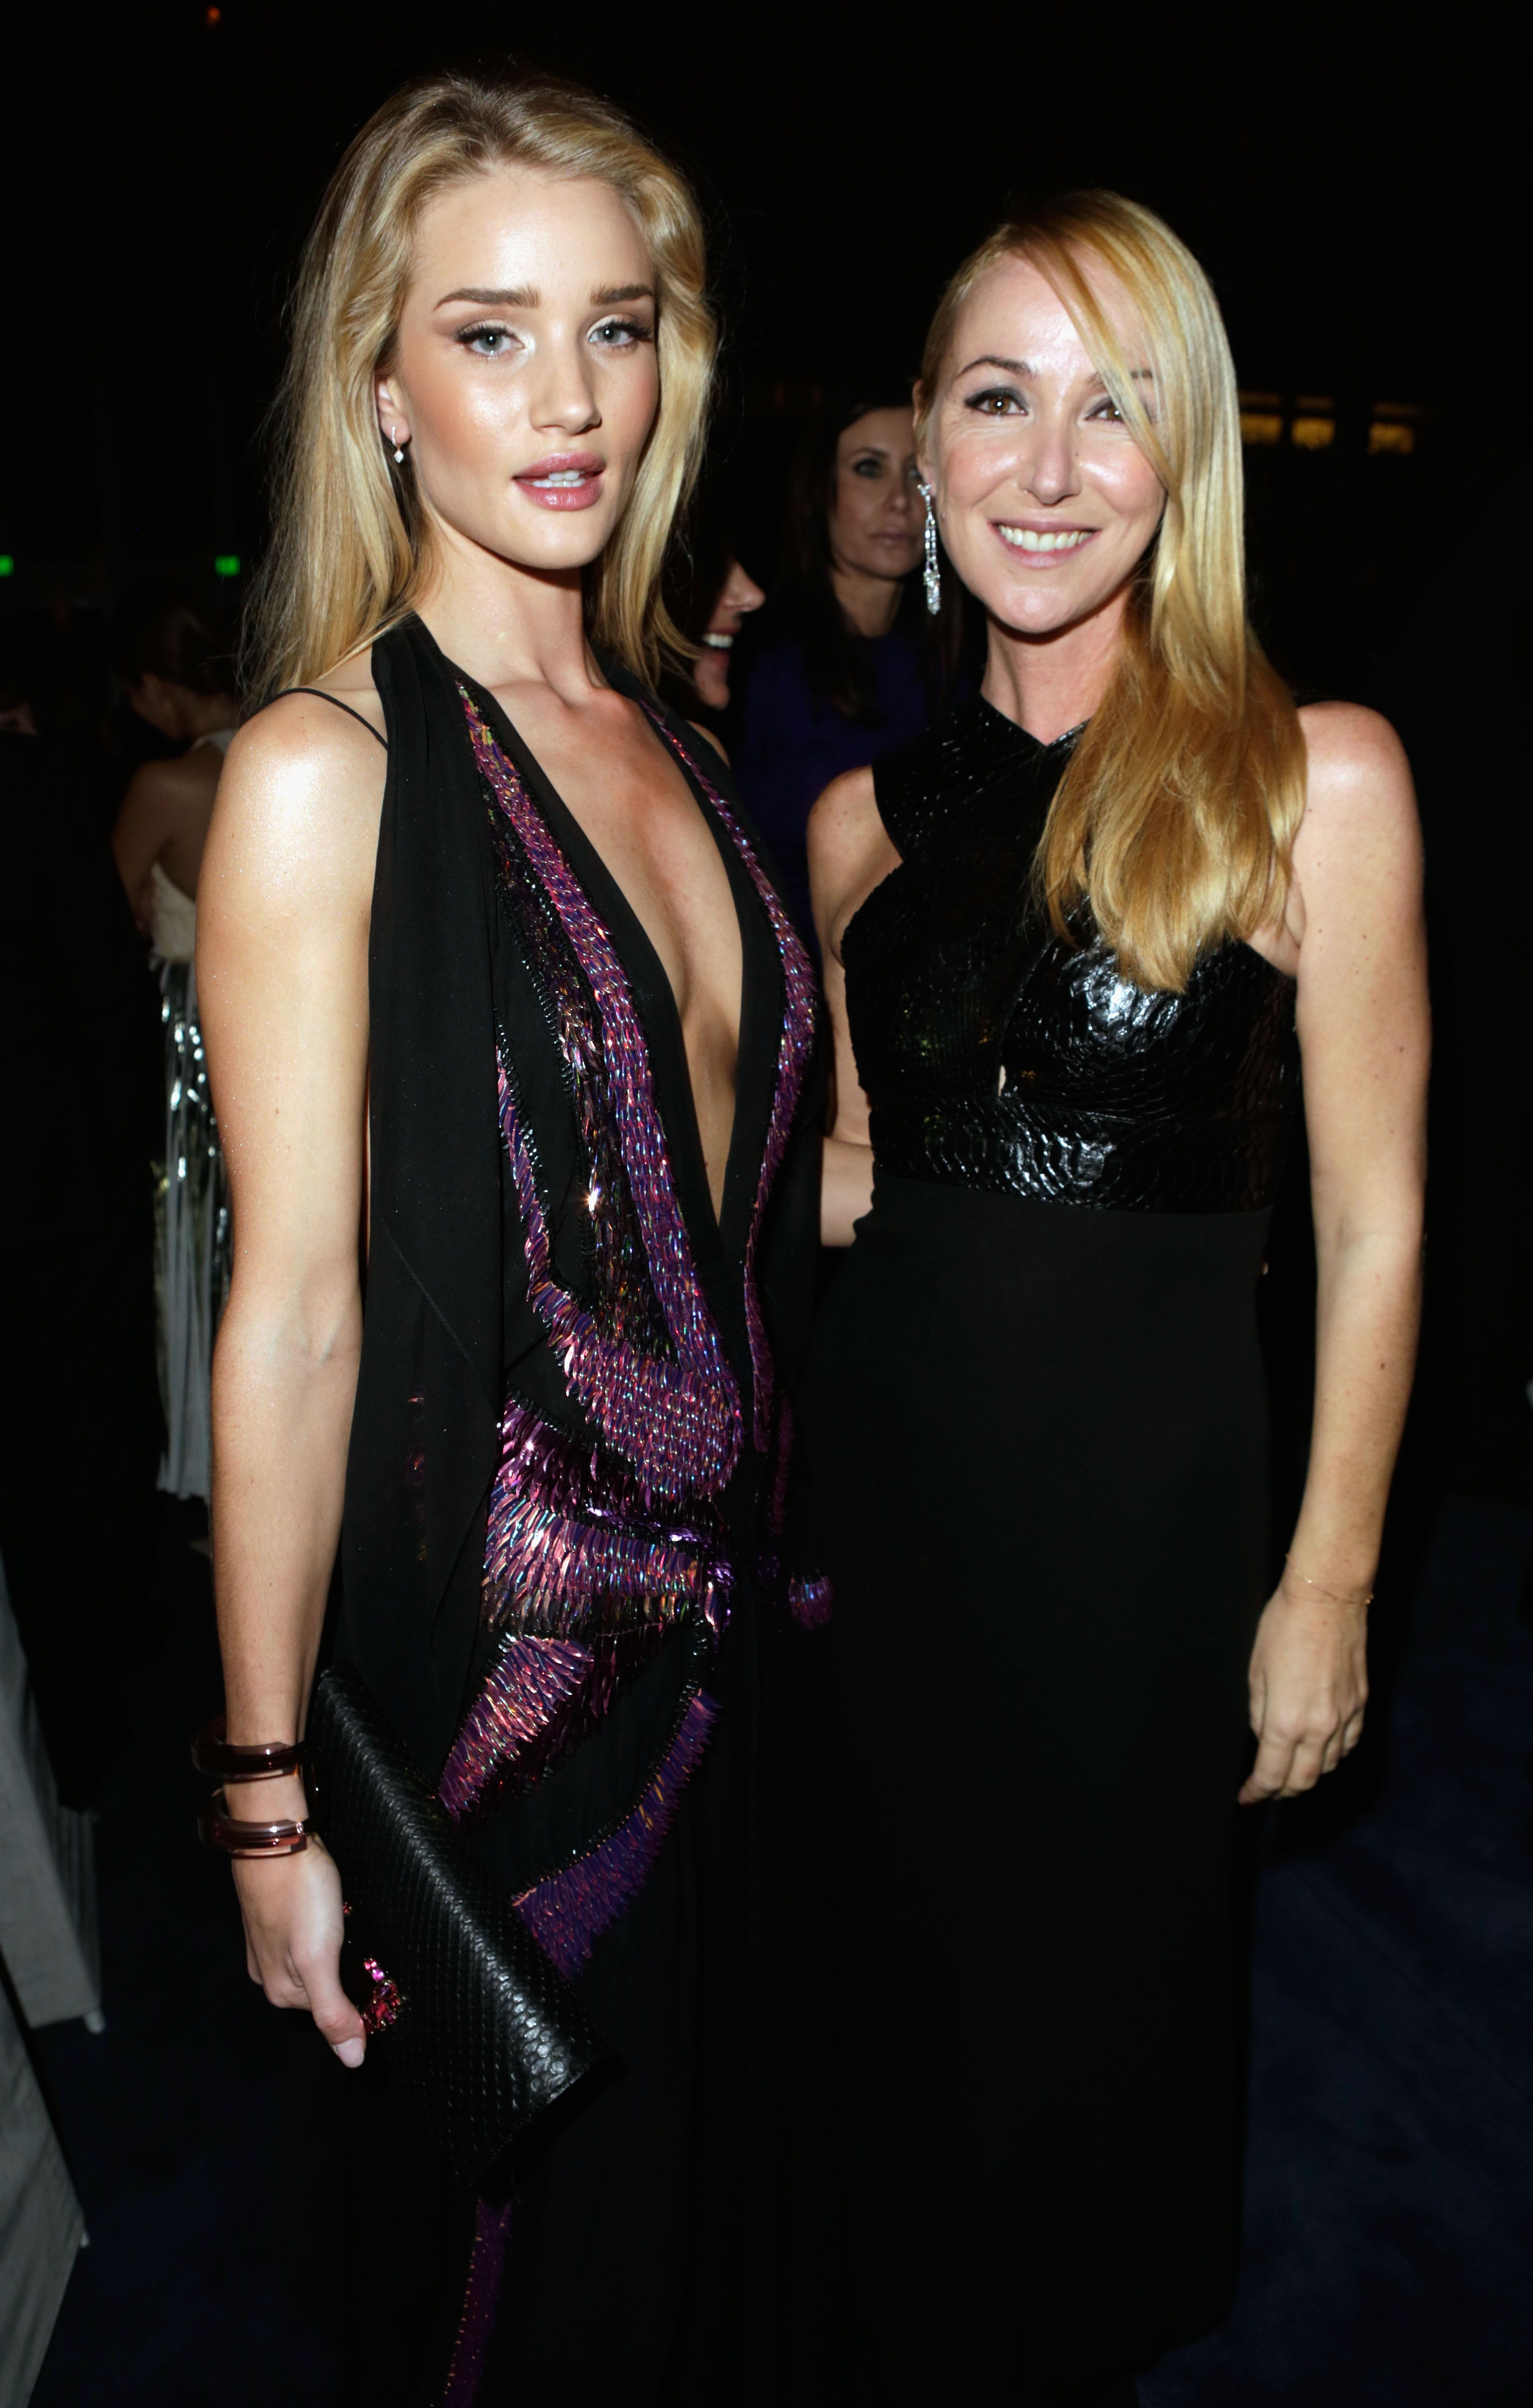 Actress Rosie Huntington-Whiteley, wearing Gucci, and Creative Director of Gucci Frida Giannini attend the LACMA 2013 Art + Film Gala